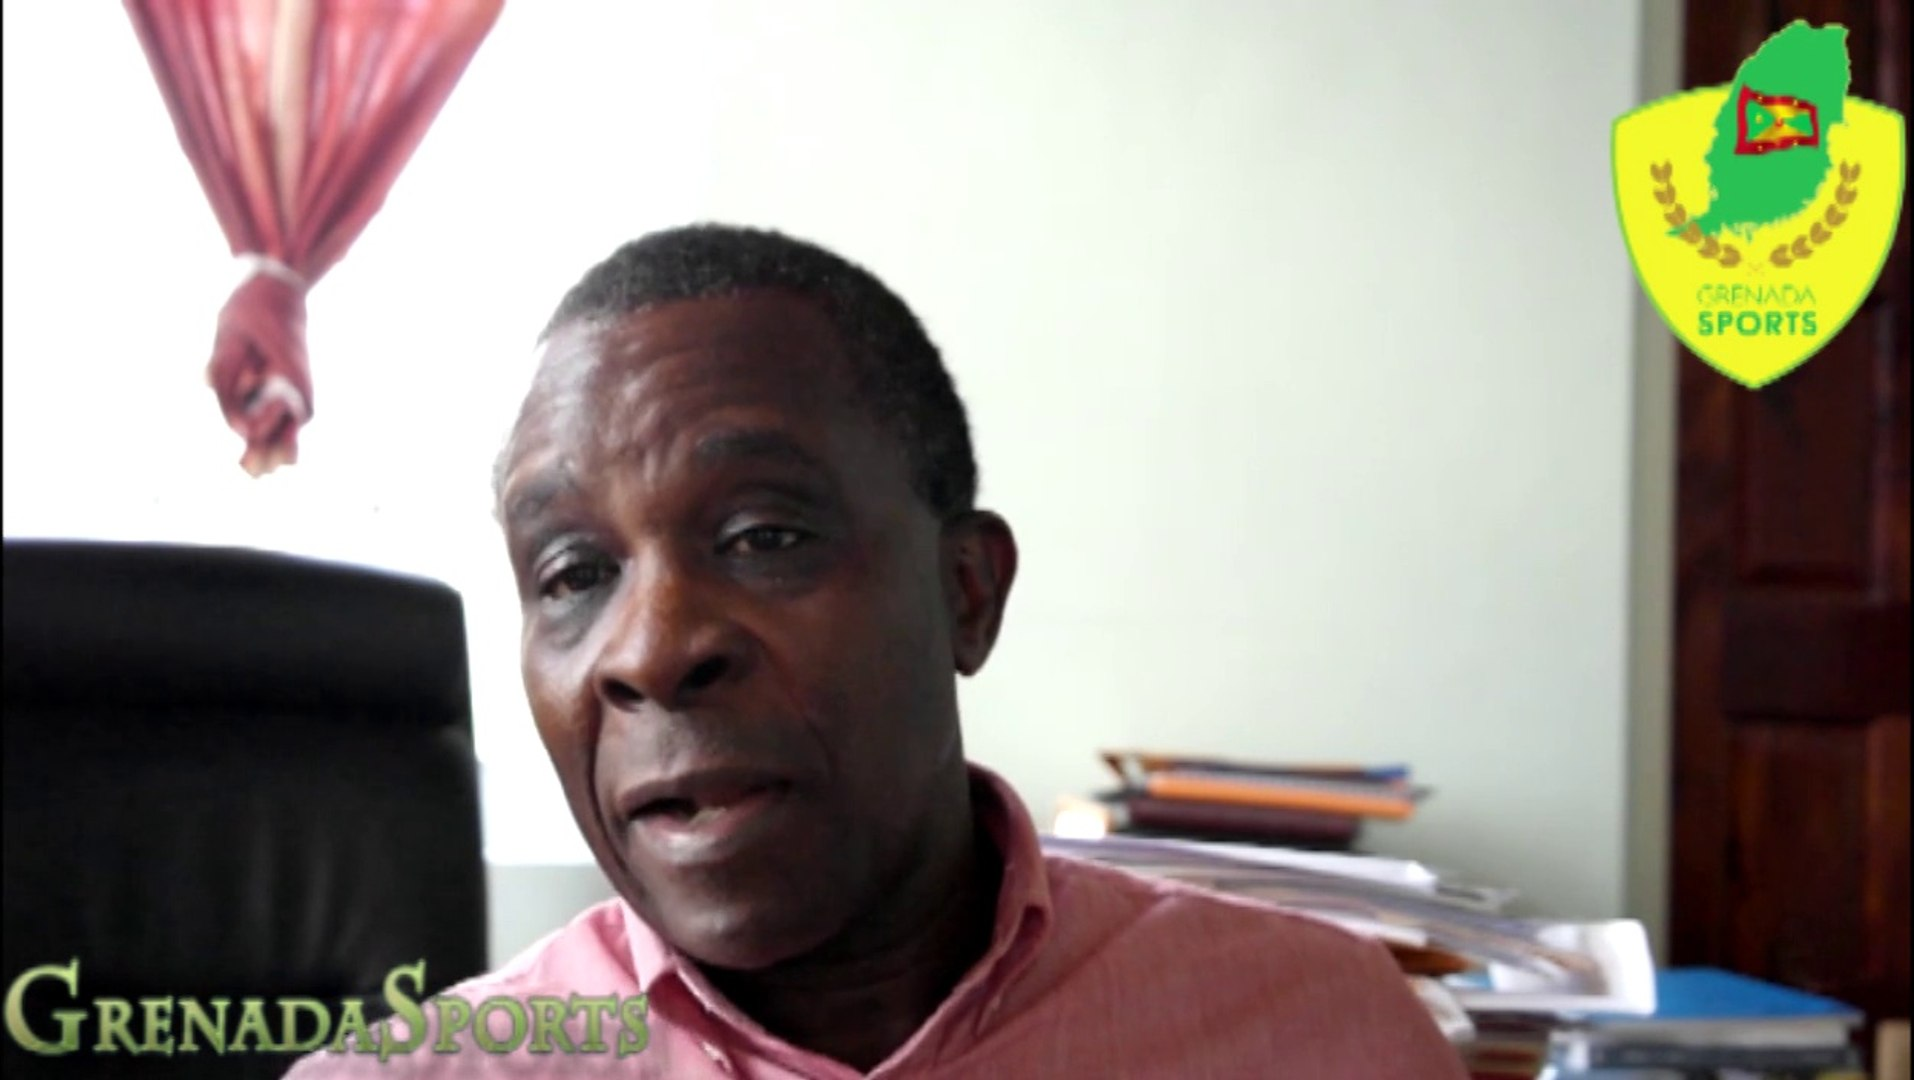 Prime Minister Keith Mitchell in exclusive interview with GrenadaSports